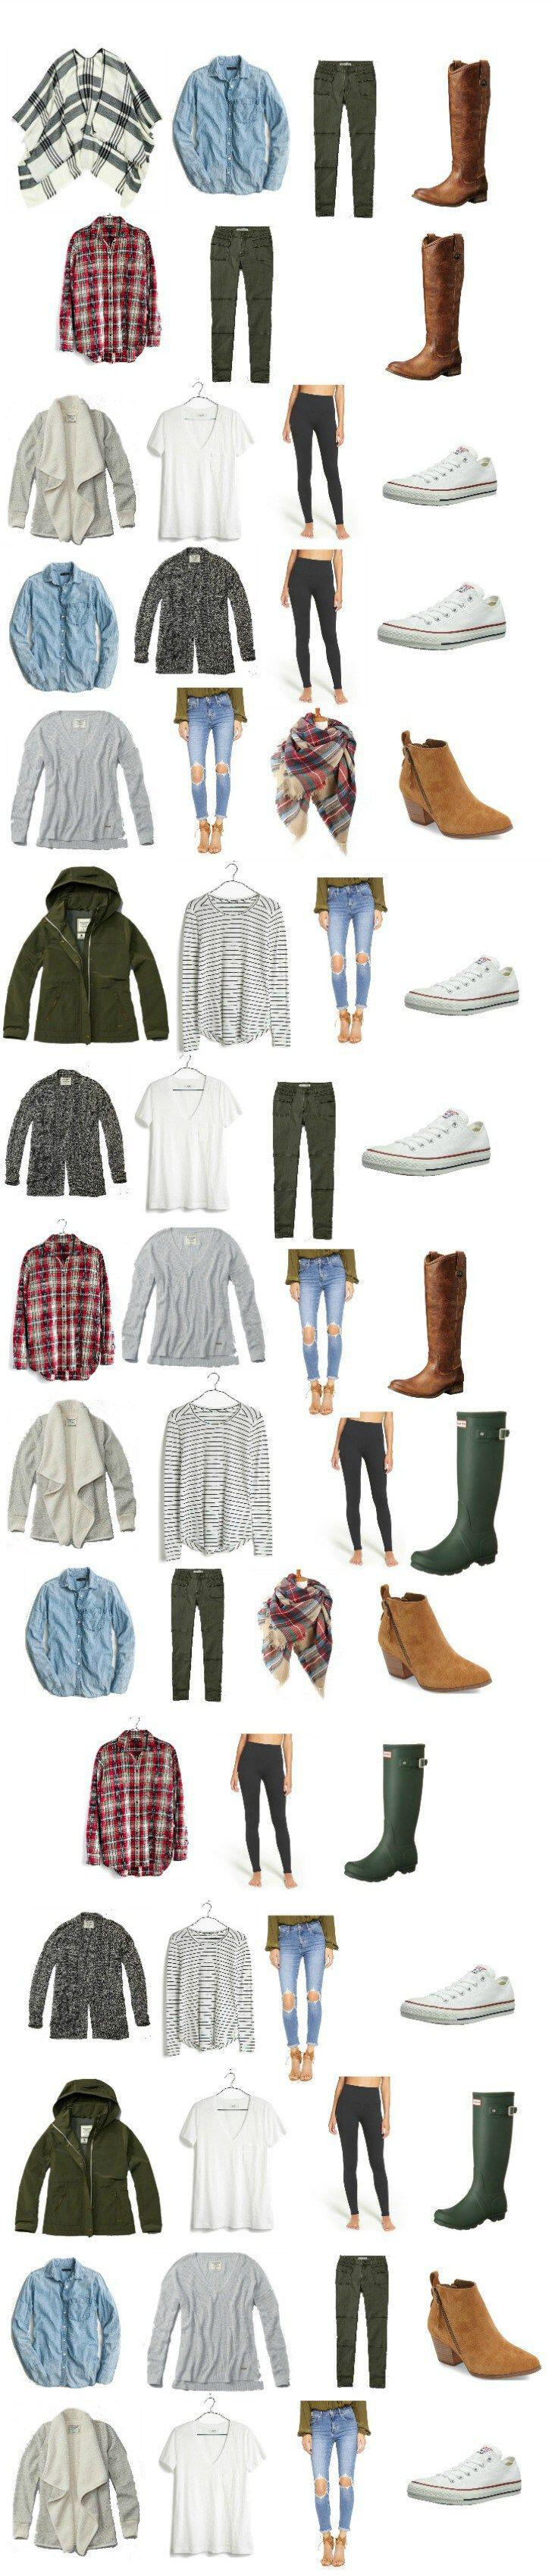 35 fall outfits for moms 2 capsule wardrobes you can copy 1 - 35 fall outfits for moms + 2 capsule wardrobes you can copy